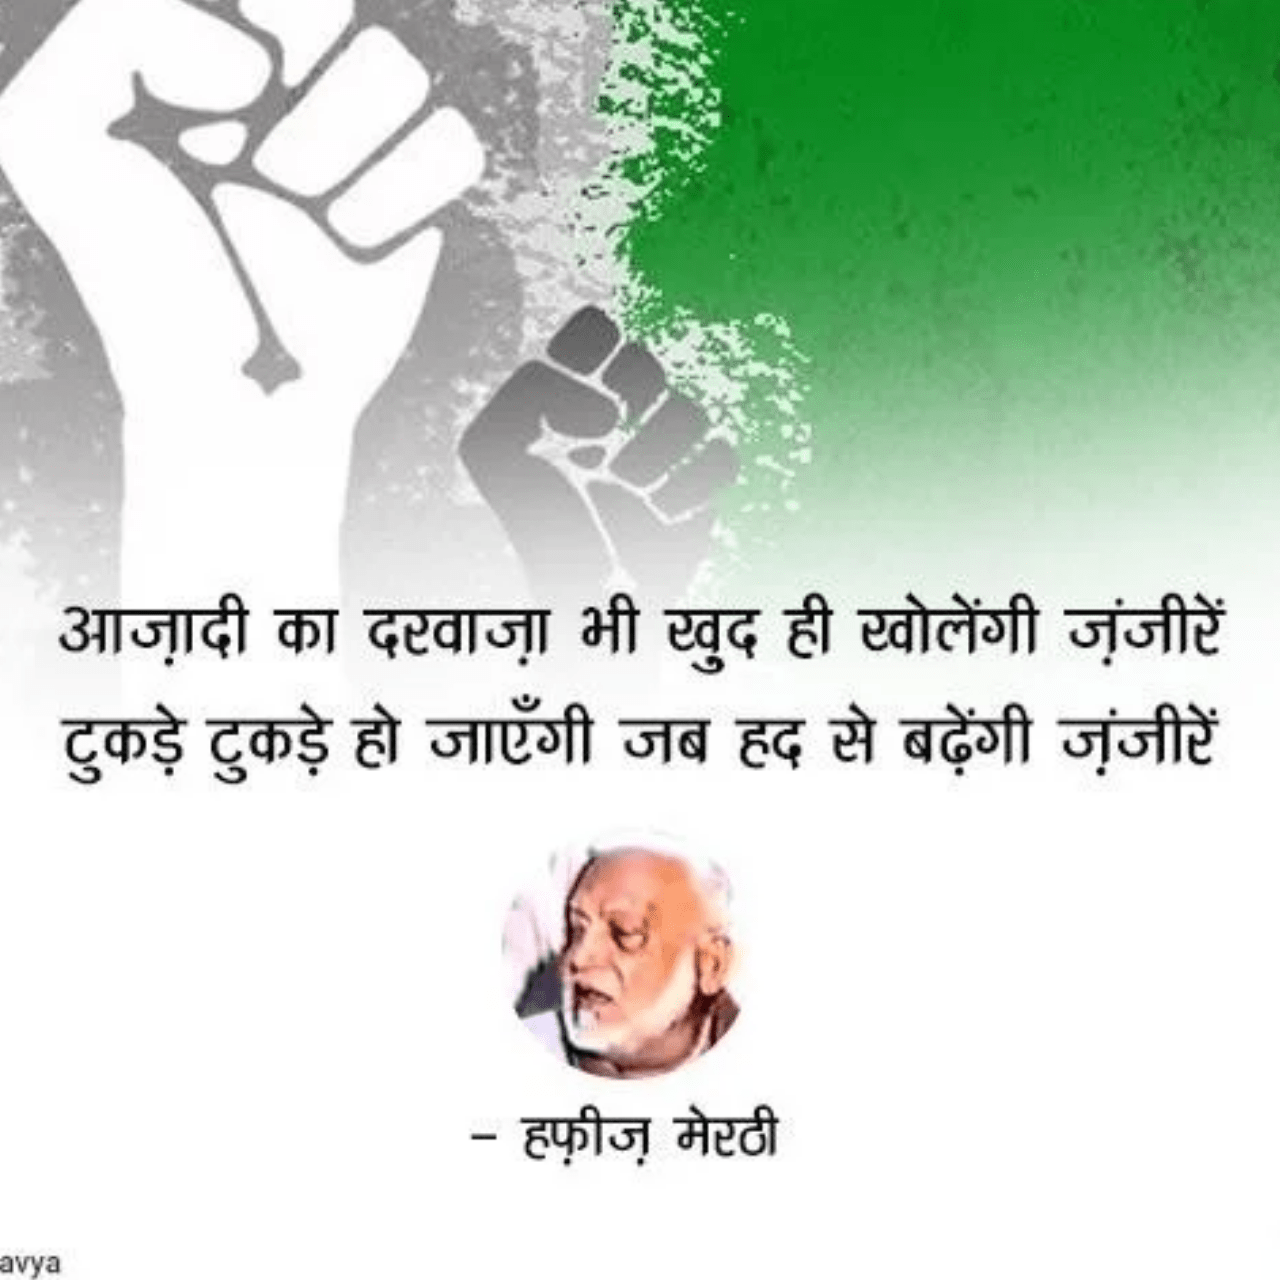 Kranti Diwas 2021 Wishes, Greetings, Messages, Quotes, Poem, HD Images, and Drawing to Share